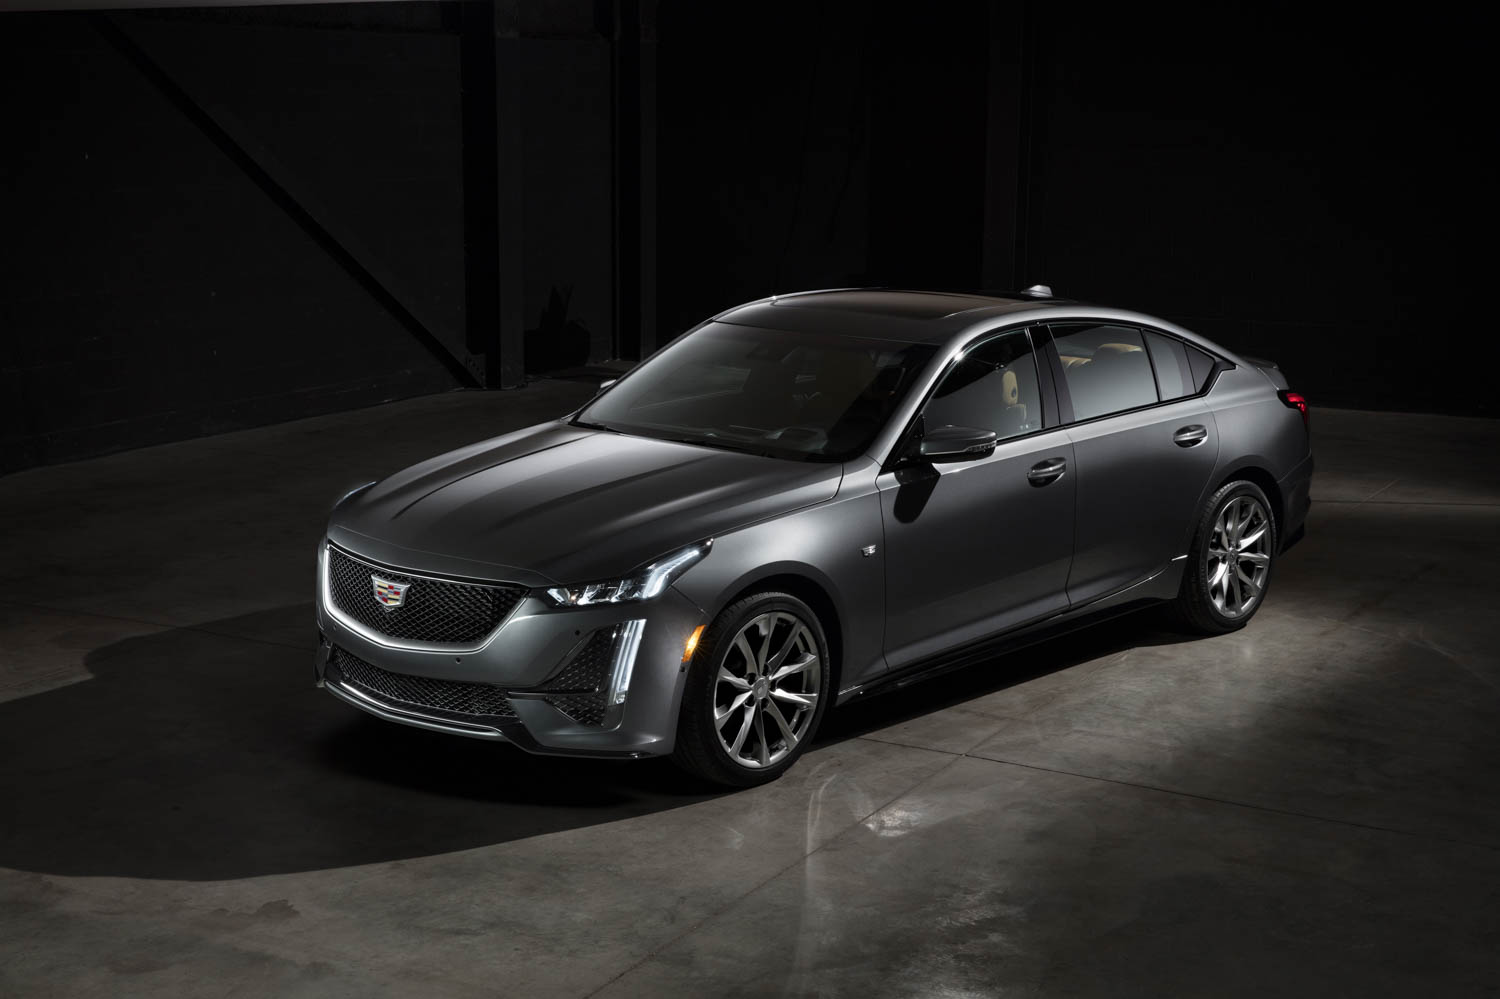 2020 Cadillac CT5 Sport front 3/4